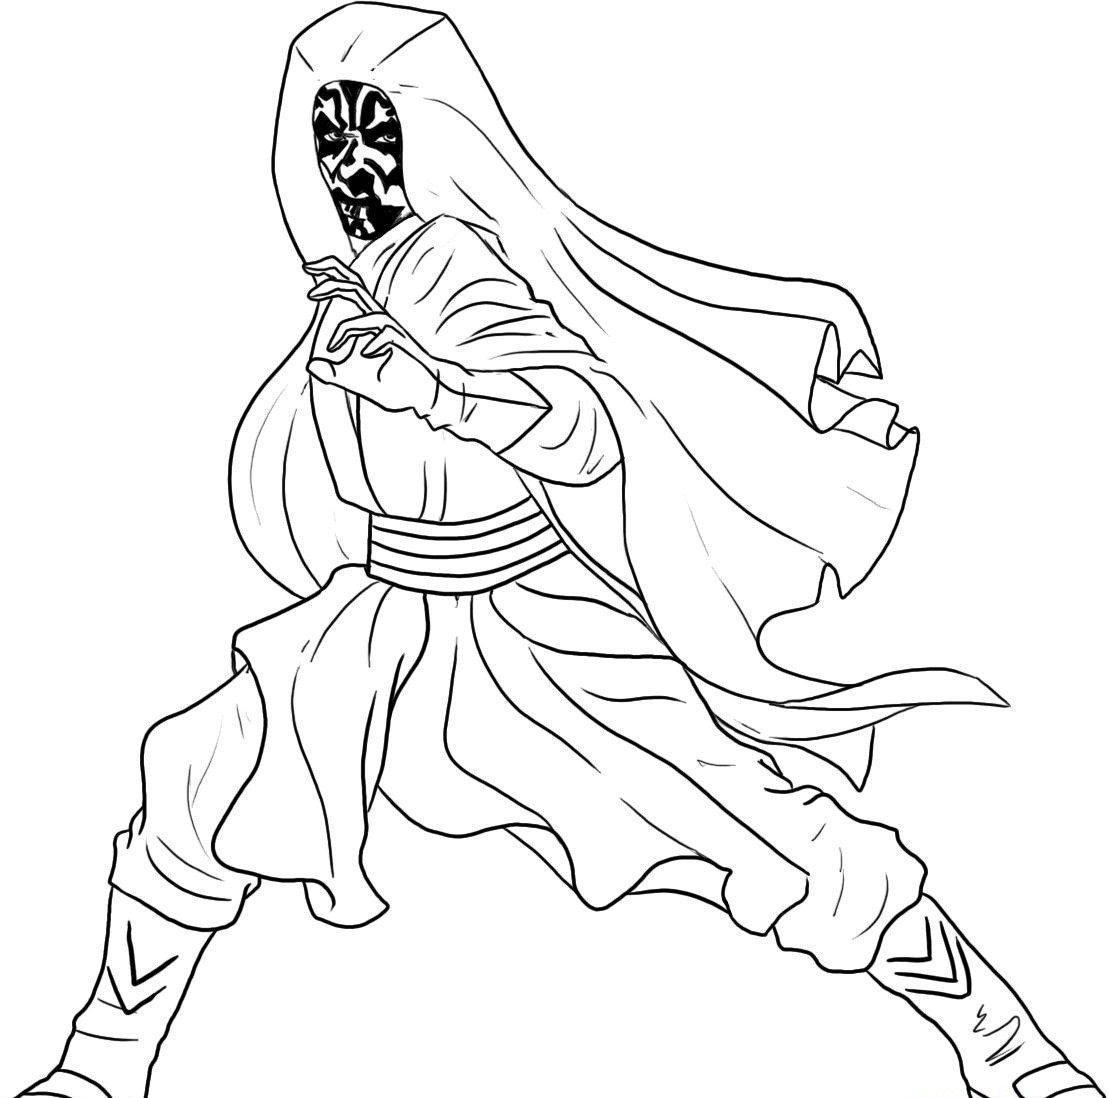 Star Wars Printable Coloring Pages Kids And Adults  Star Wars Coloring Pages Free Printable Star Wars